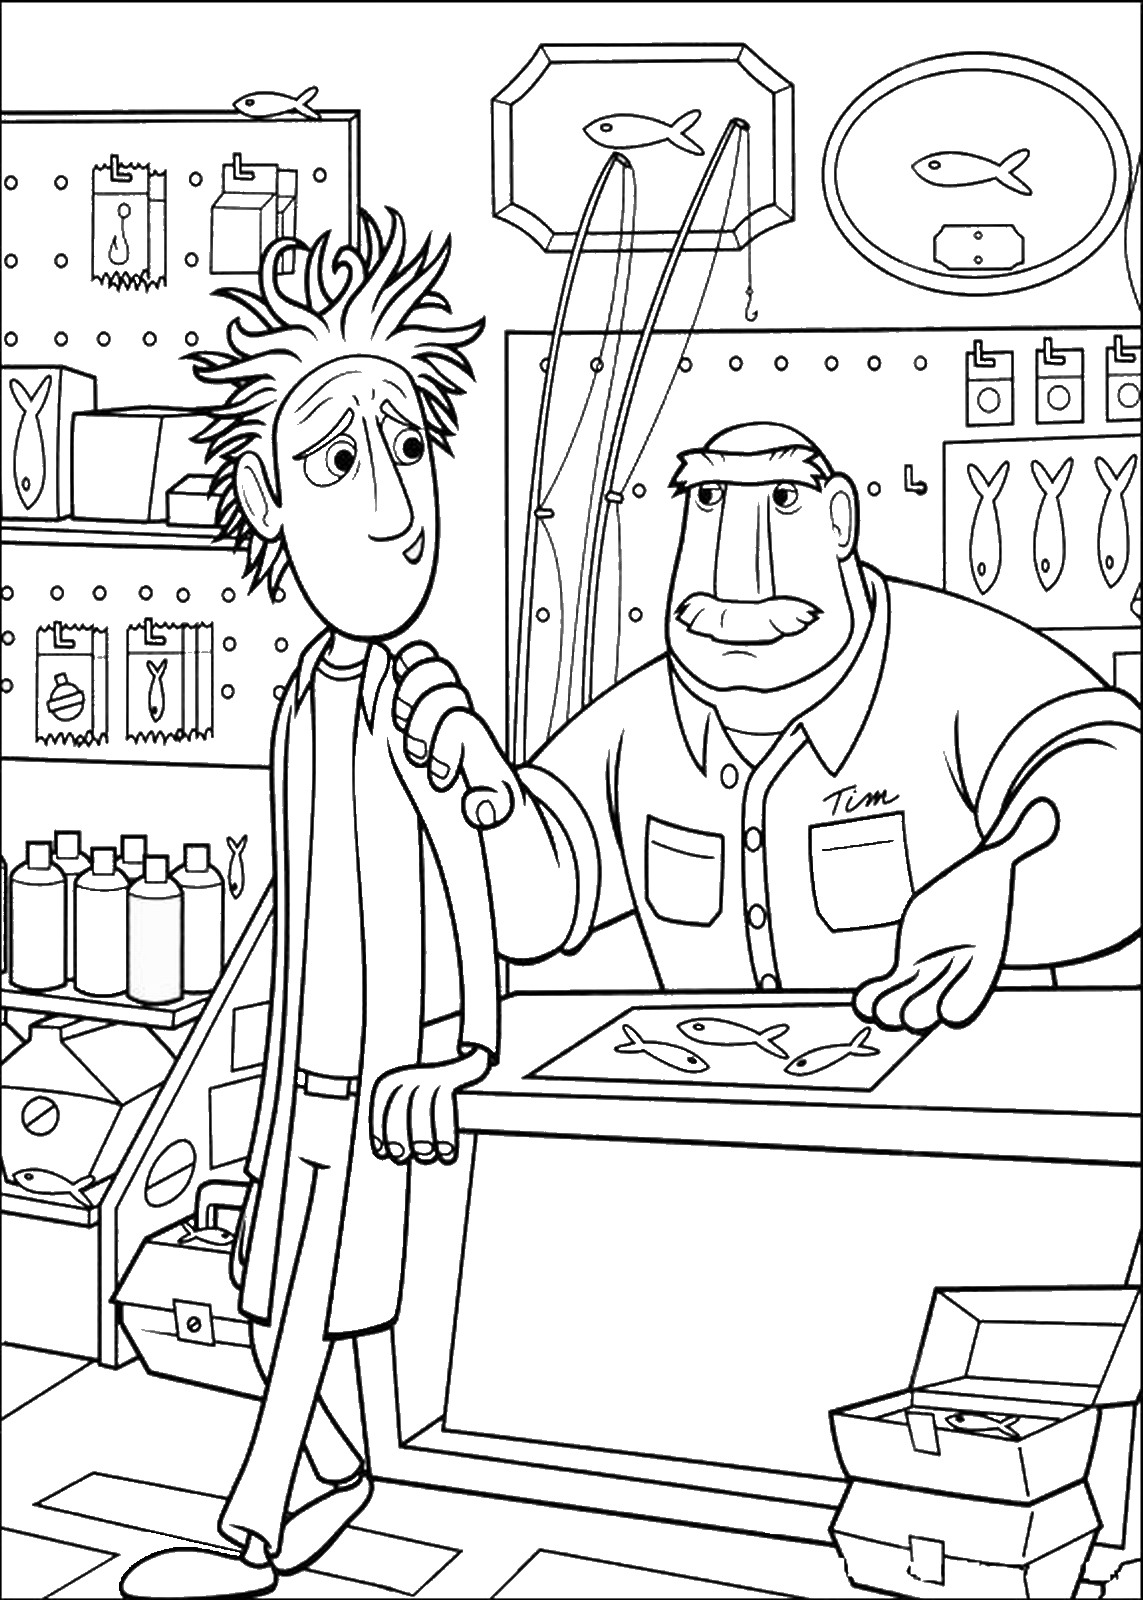 cloudy with a chance of meatballs 2 coloring pages cloudy with a chance of meatballs coloring pages meatballs of a cloudy chance pages coloring with 2